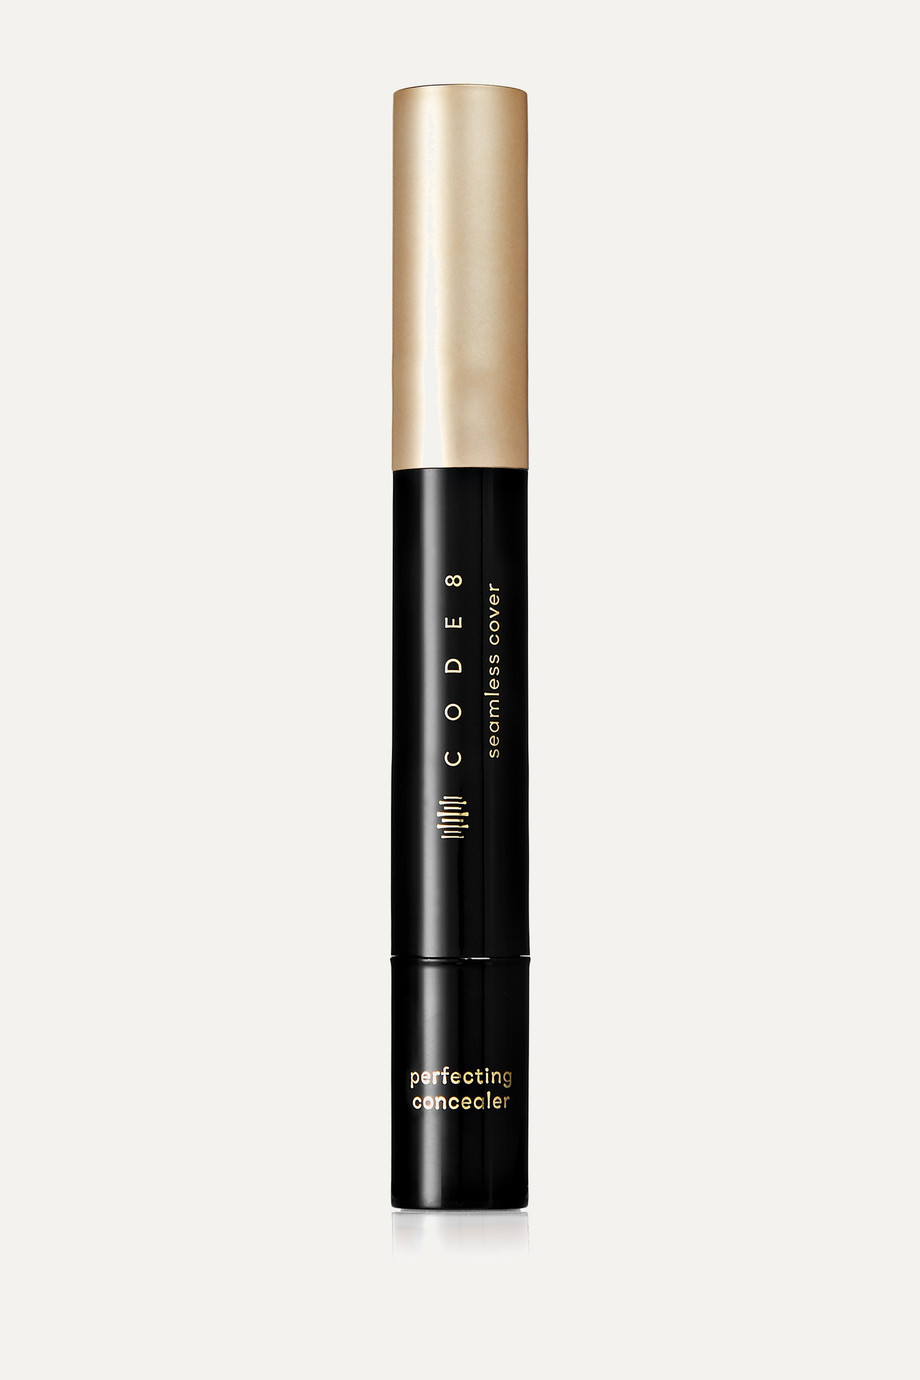 Code8 Seamless Cover Perfecting Concealer - NW70